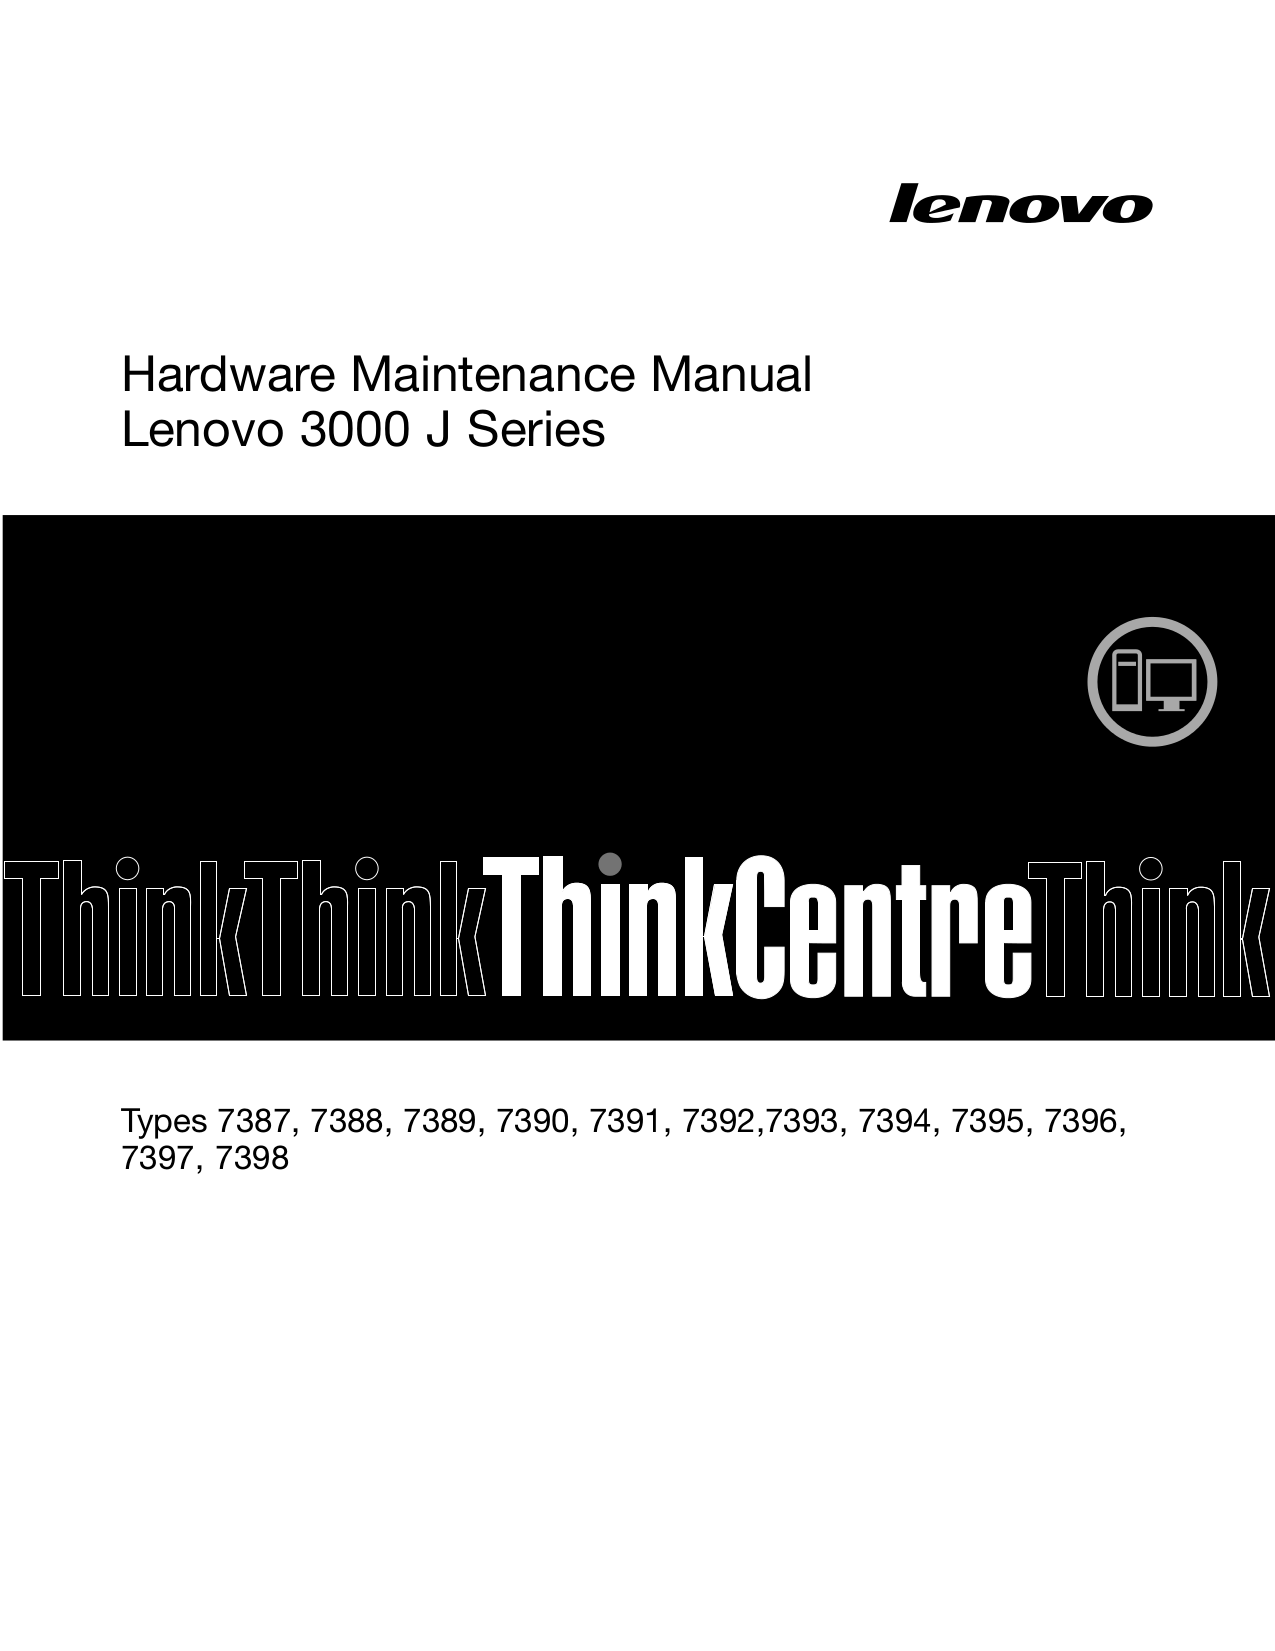 pdf for Lenovo Desktop 3000 J110 7396 manual